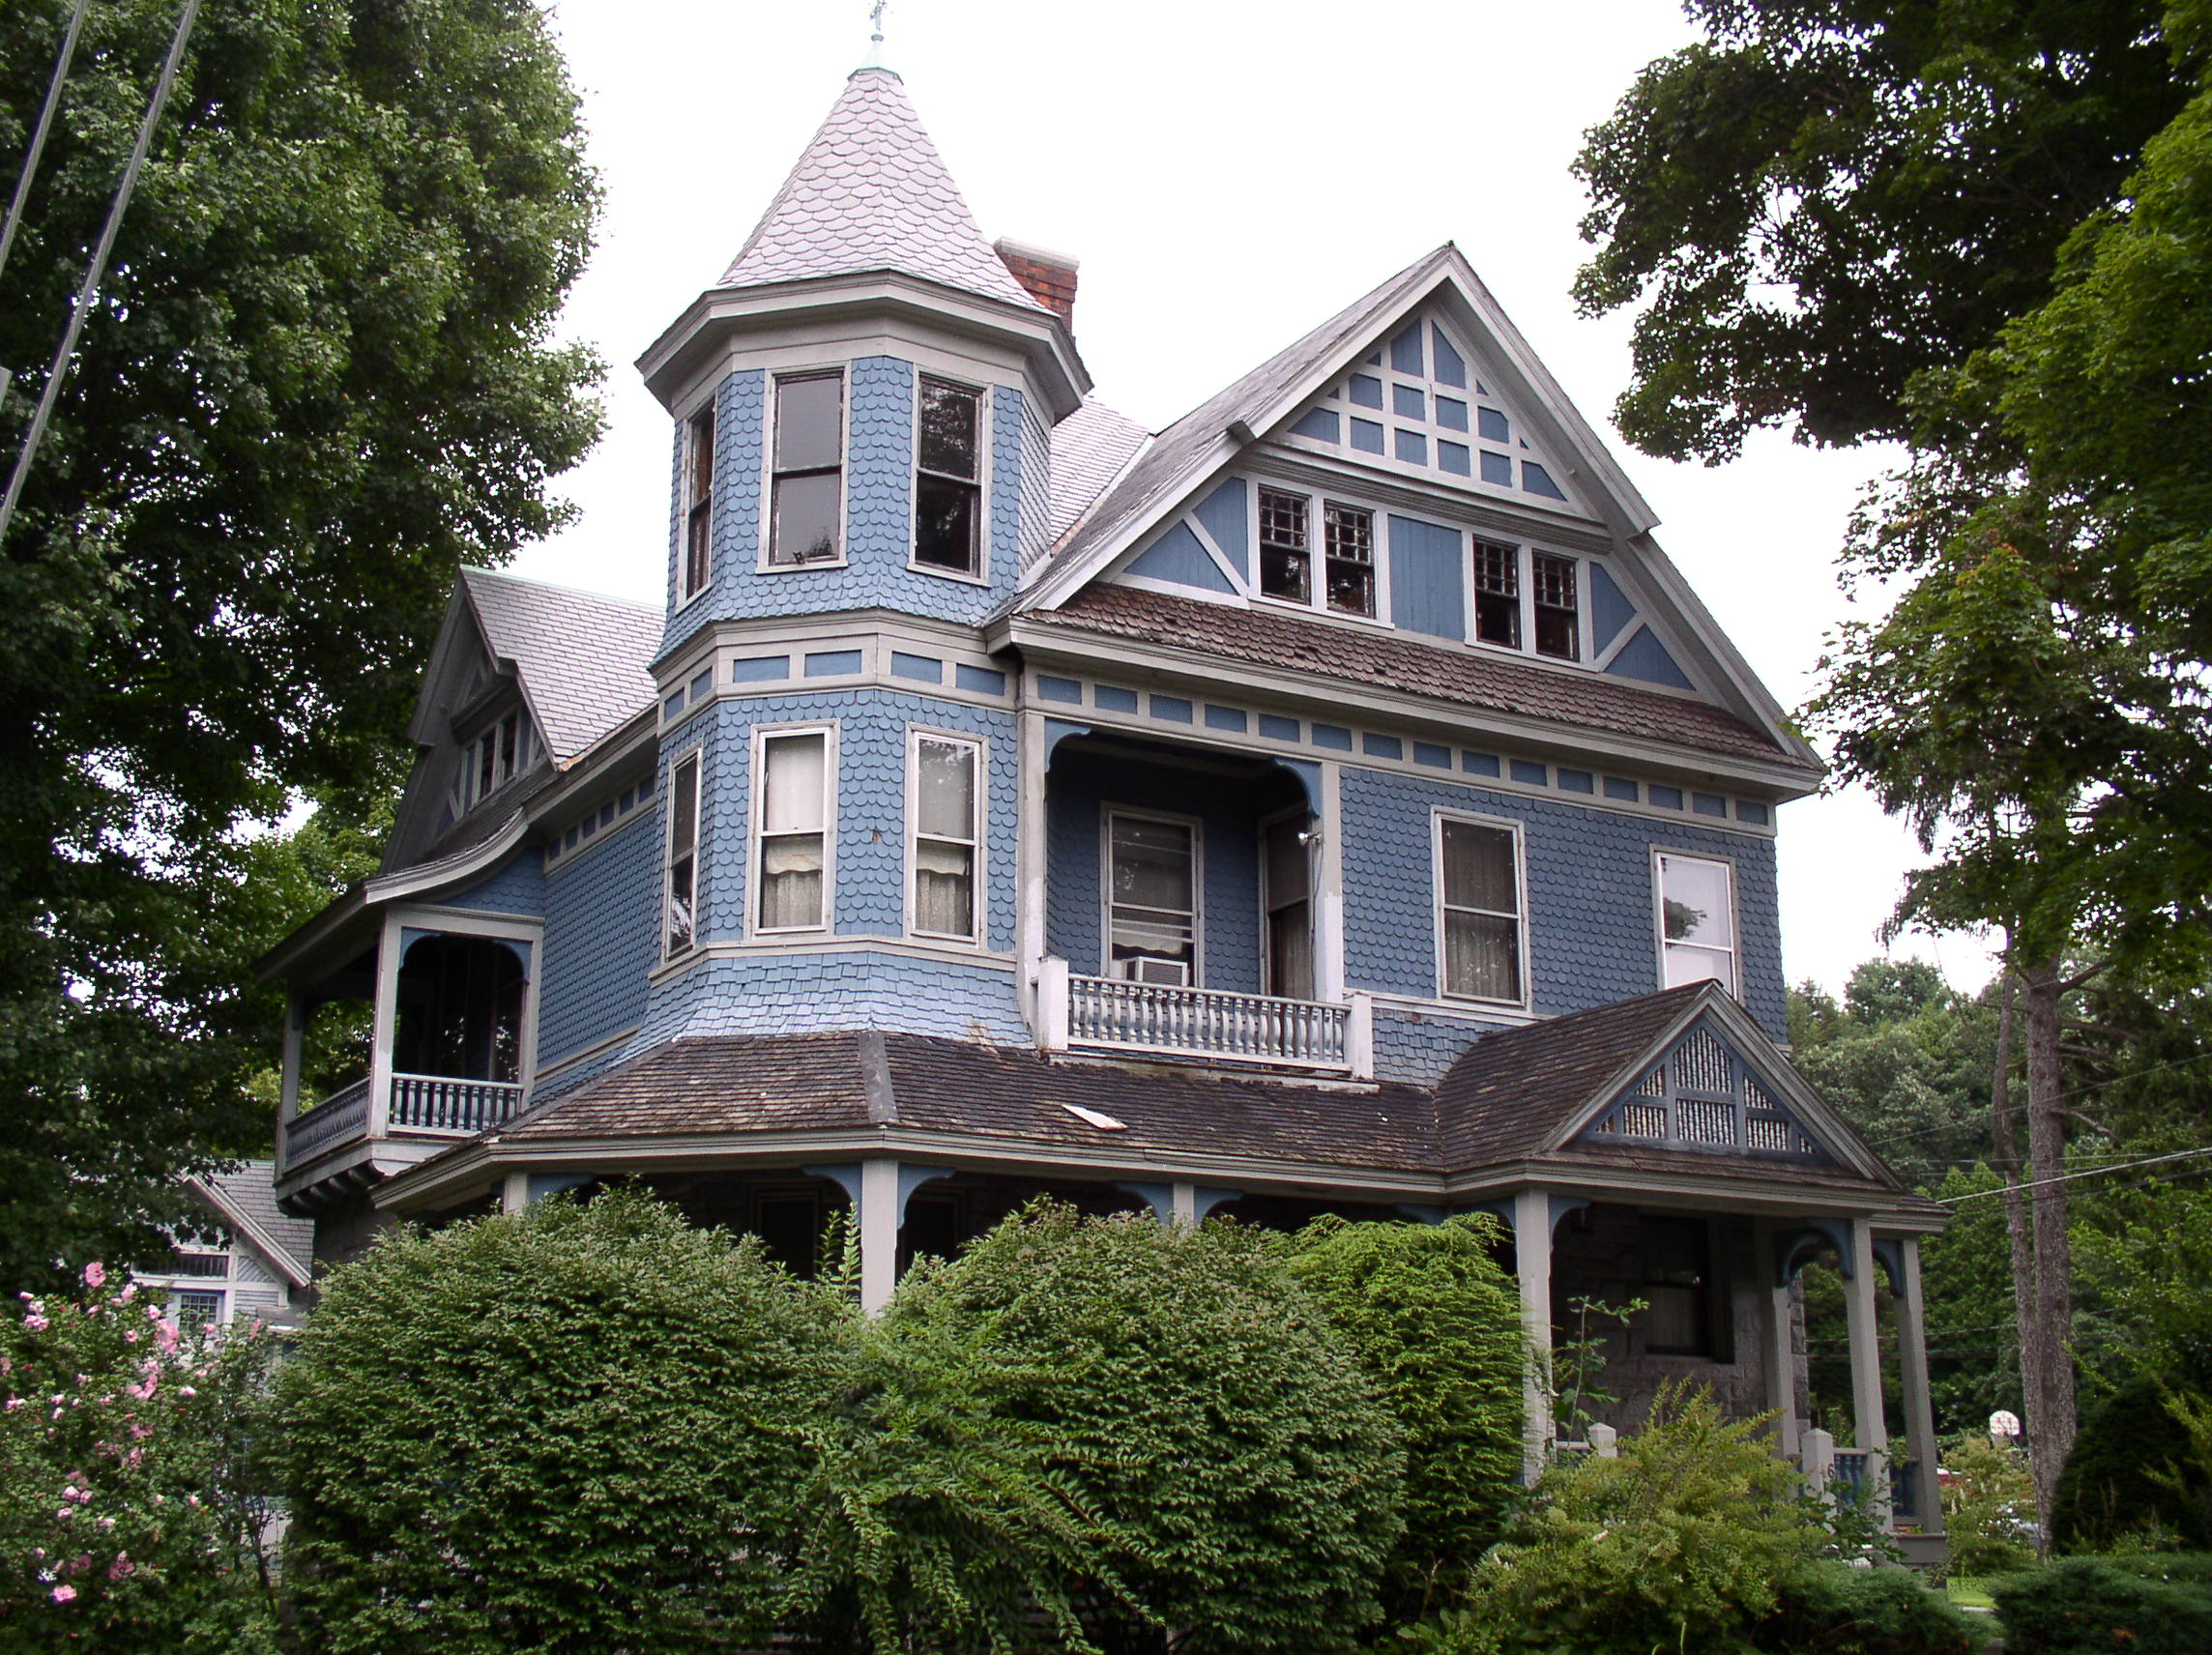 Queen anne architectural styles of america and europe for Architectural styles of american homes